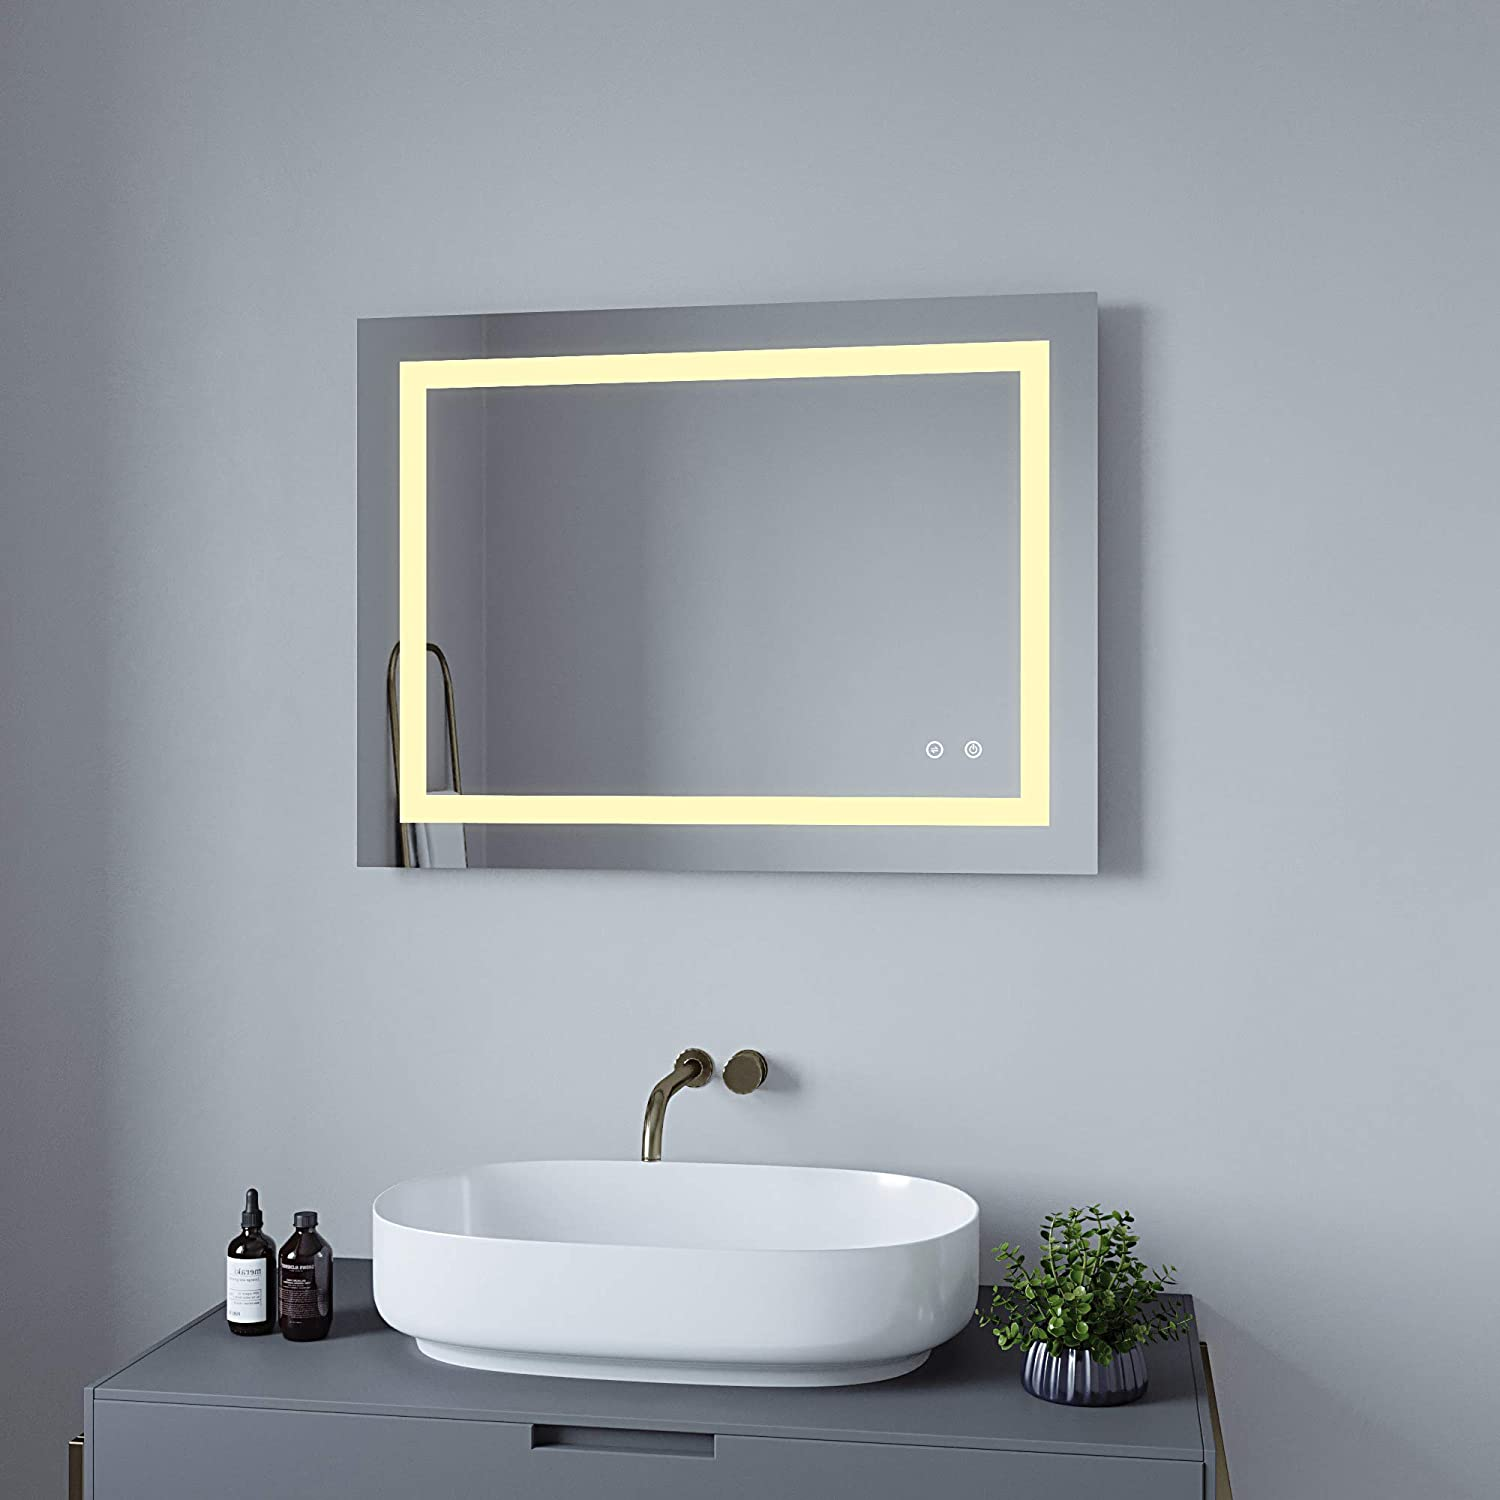 Buy Aquabatos 32 X 24 Illuminated Led Bathroom Mirror Led Mirrors Light With Sensor Demister Adjustable Warm White Daylight Lights Dimmable Memory Touch Button Ip44 Waterproof Online In Taiwan B082tqhyrr